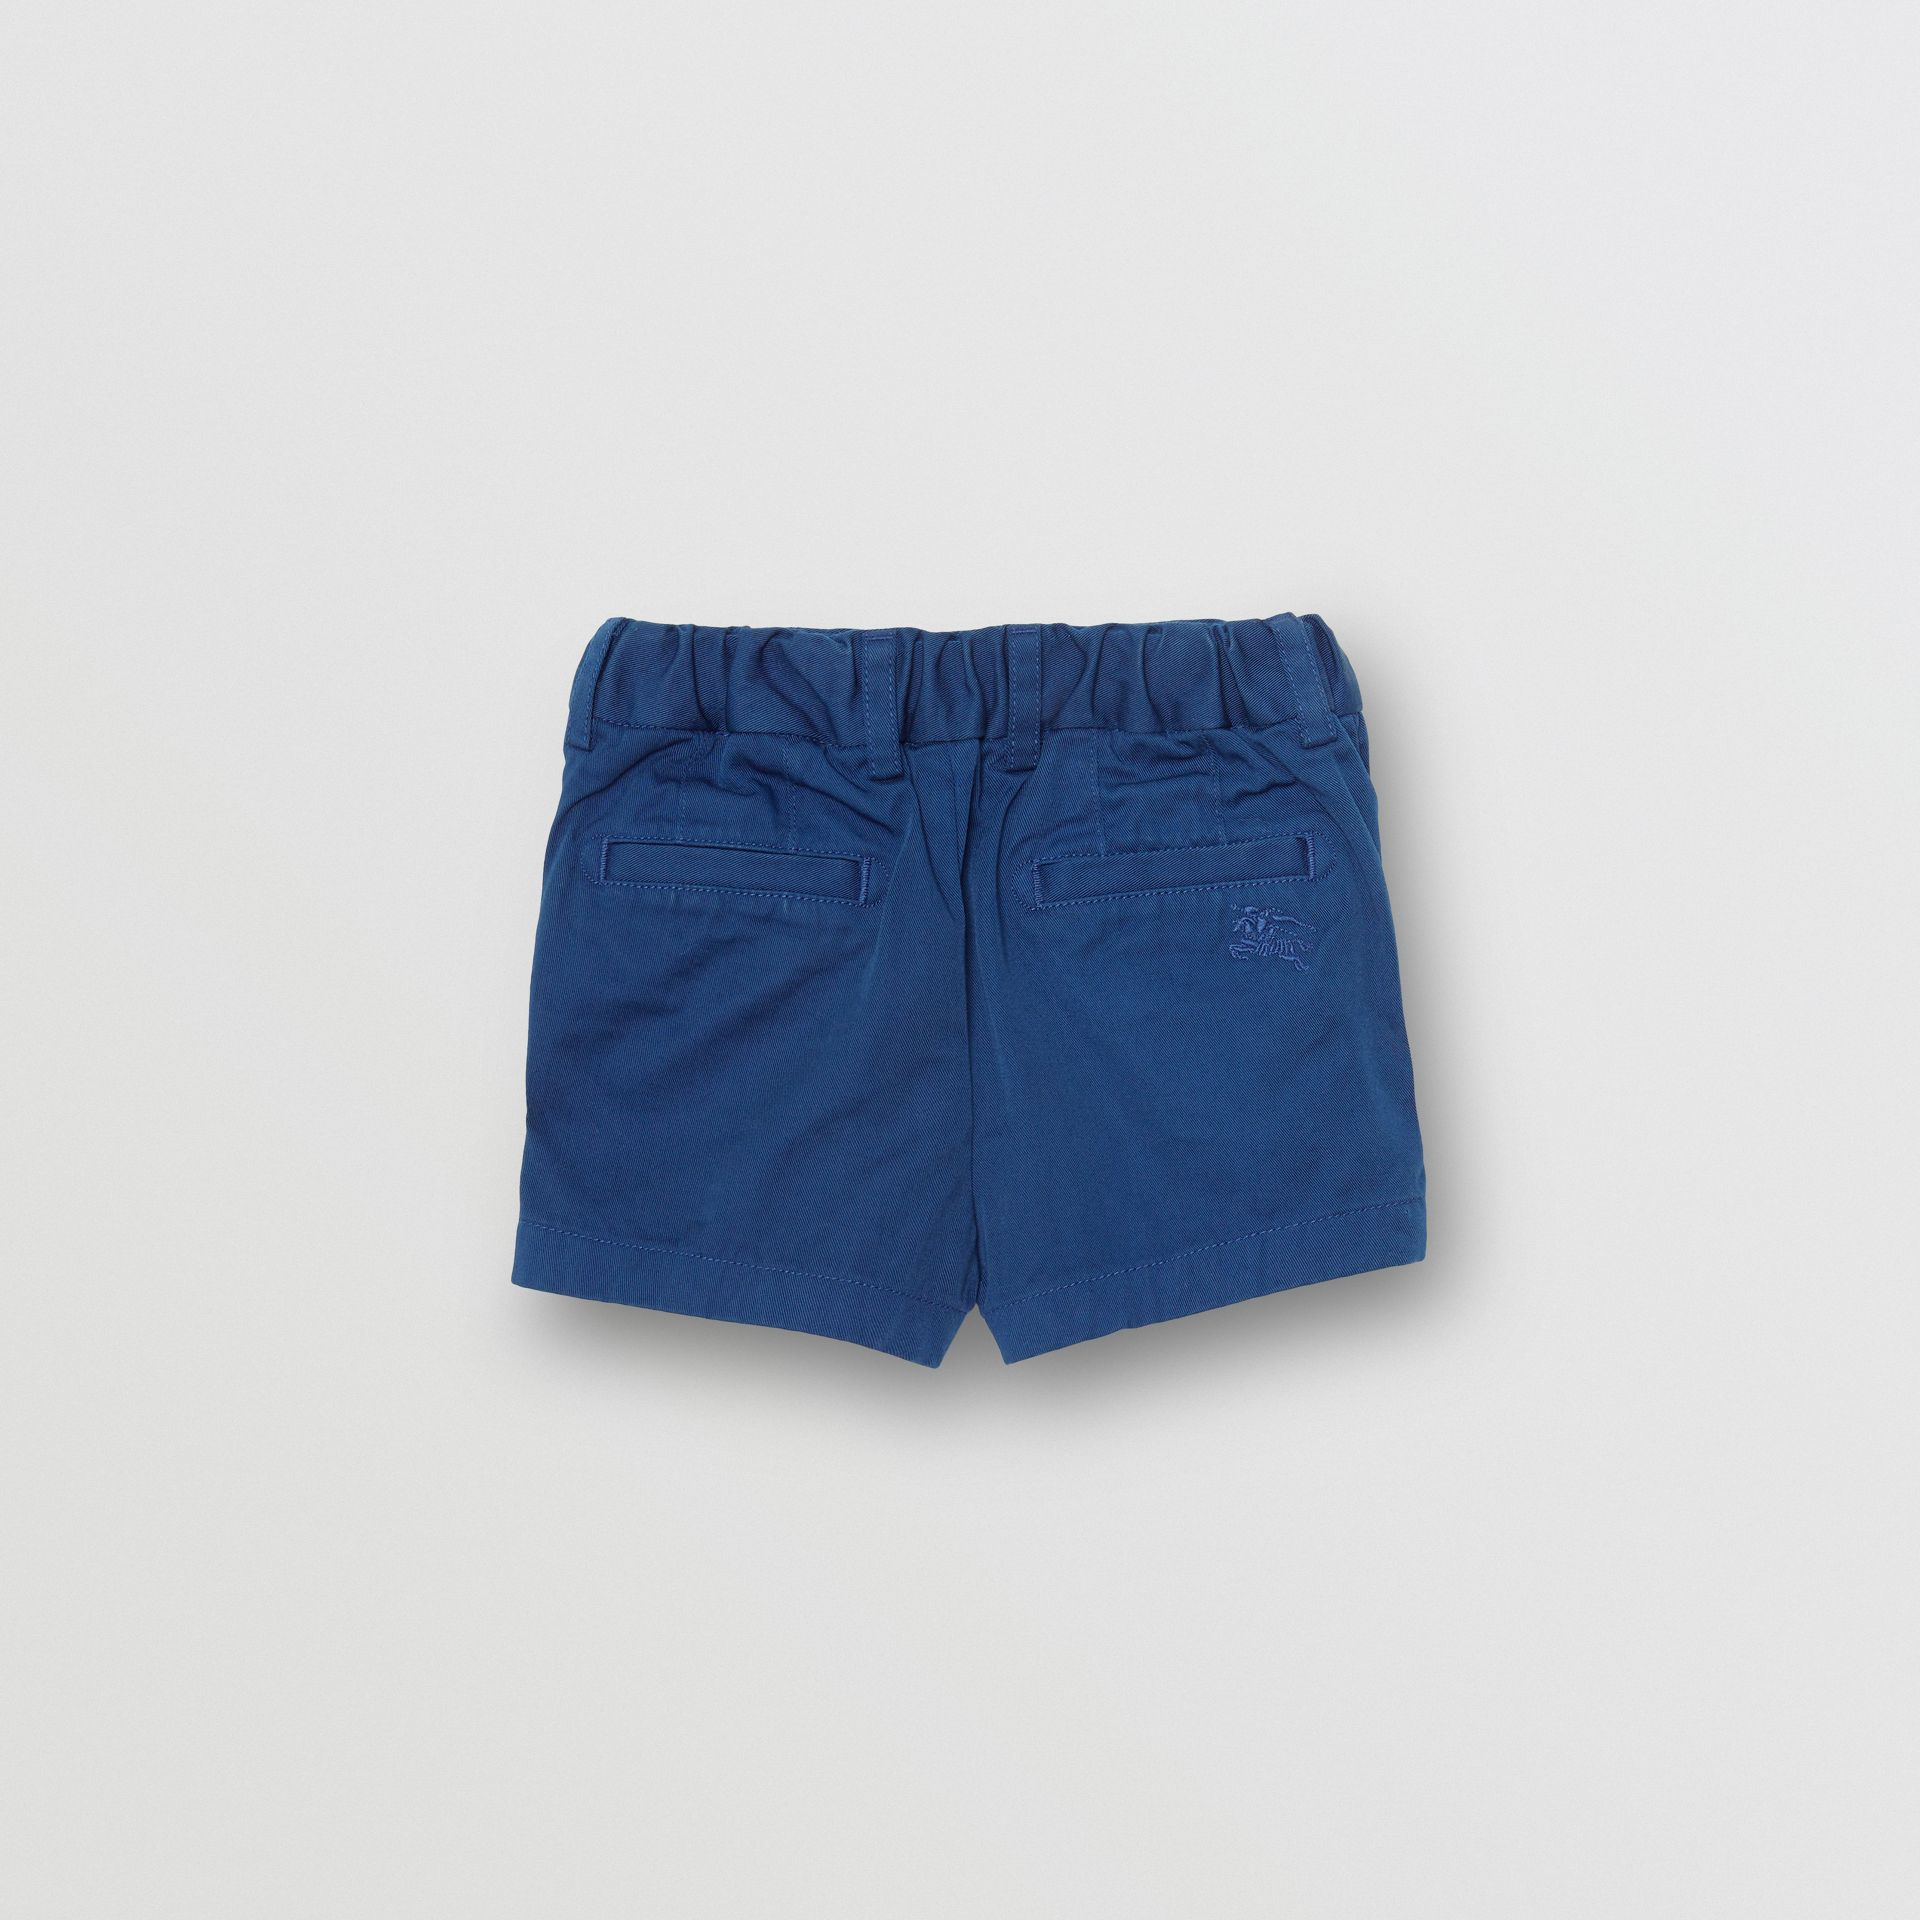 Cotton Chino Shorts in Bright Navy | Burberry - gallery image 3